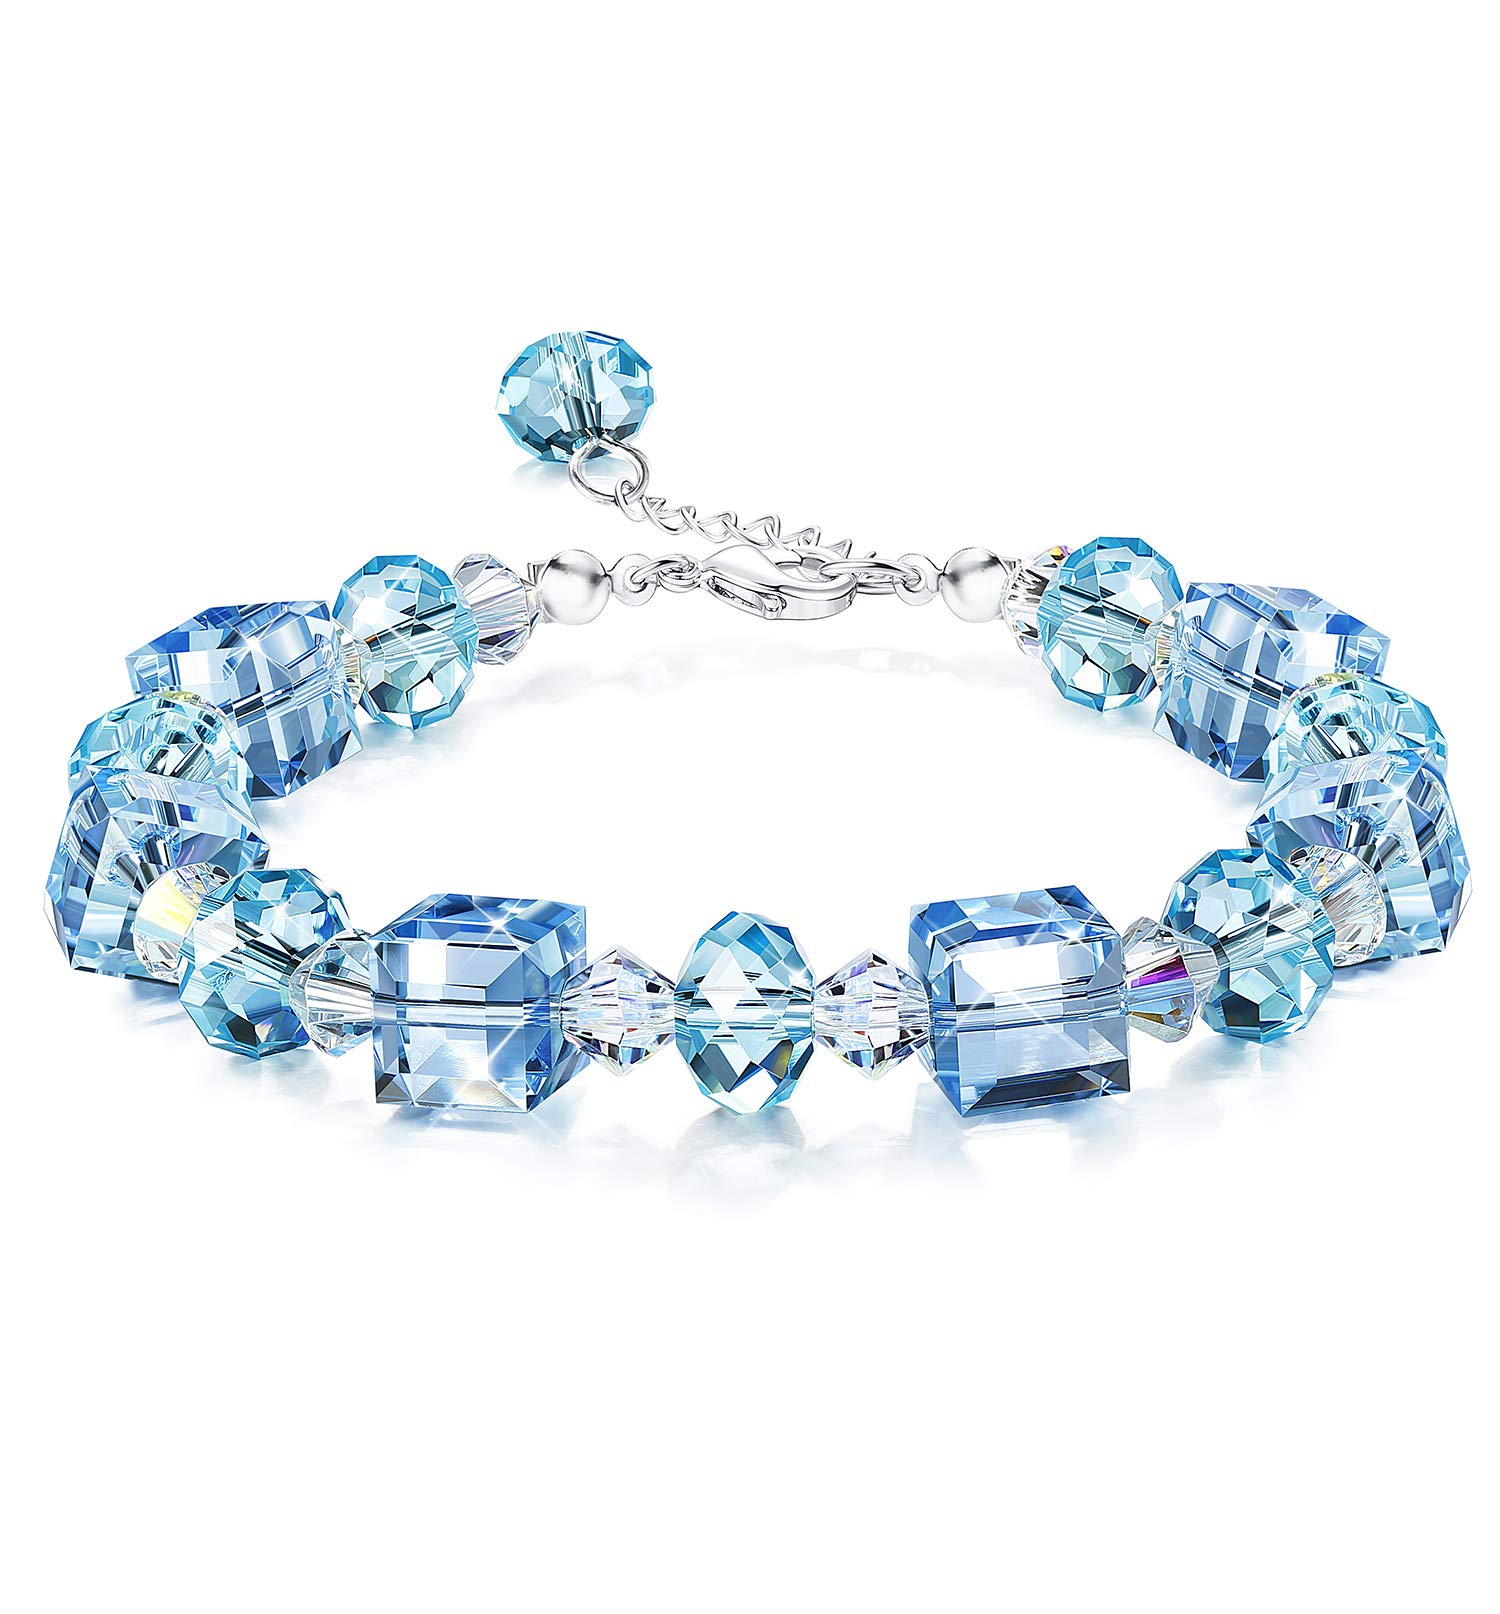 KesaPlan Crystals Bracelets, Crystals from Swarovski, ''Flowing Water'' Blue Crystals Bracelets for Women Girls Cute Bracelets, Jewelry Gift for Christmas Day, 7''+2'' by KesaPlan